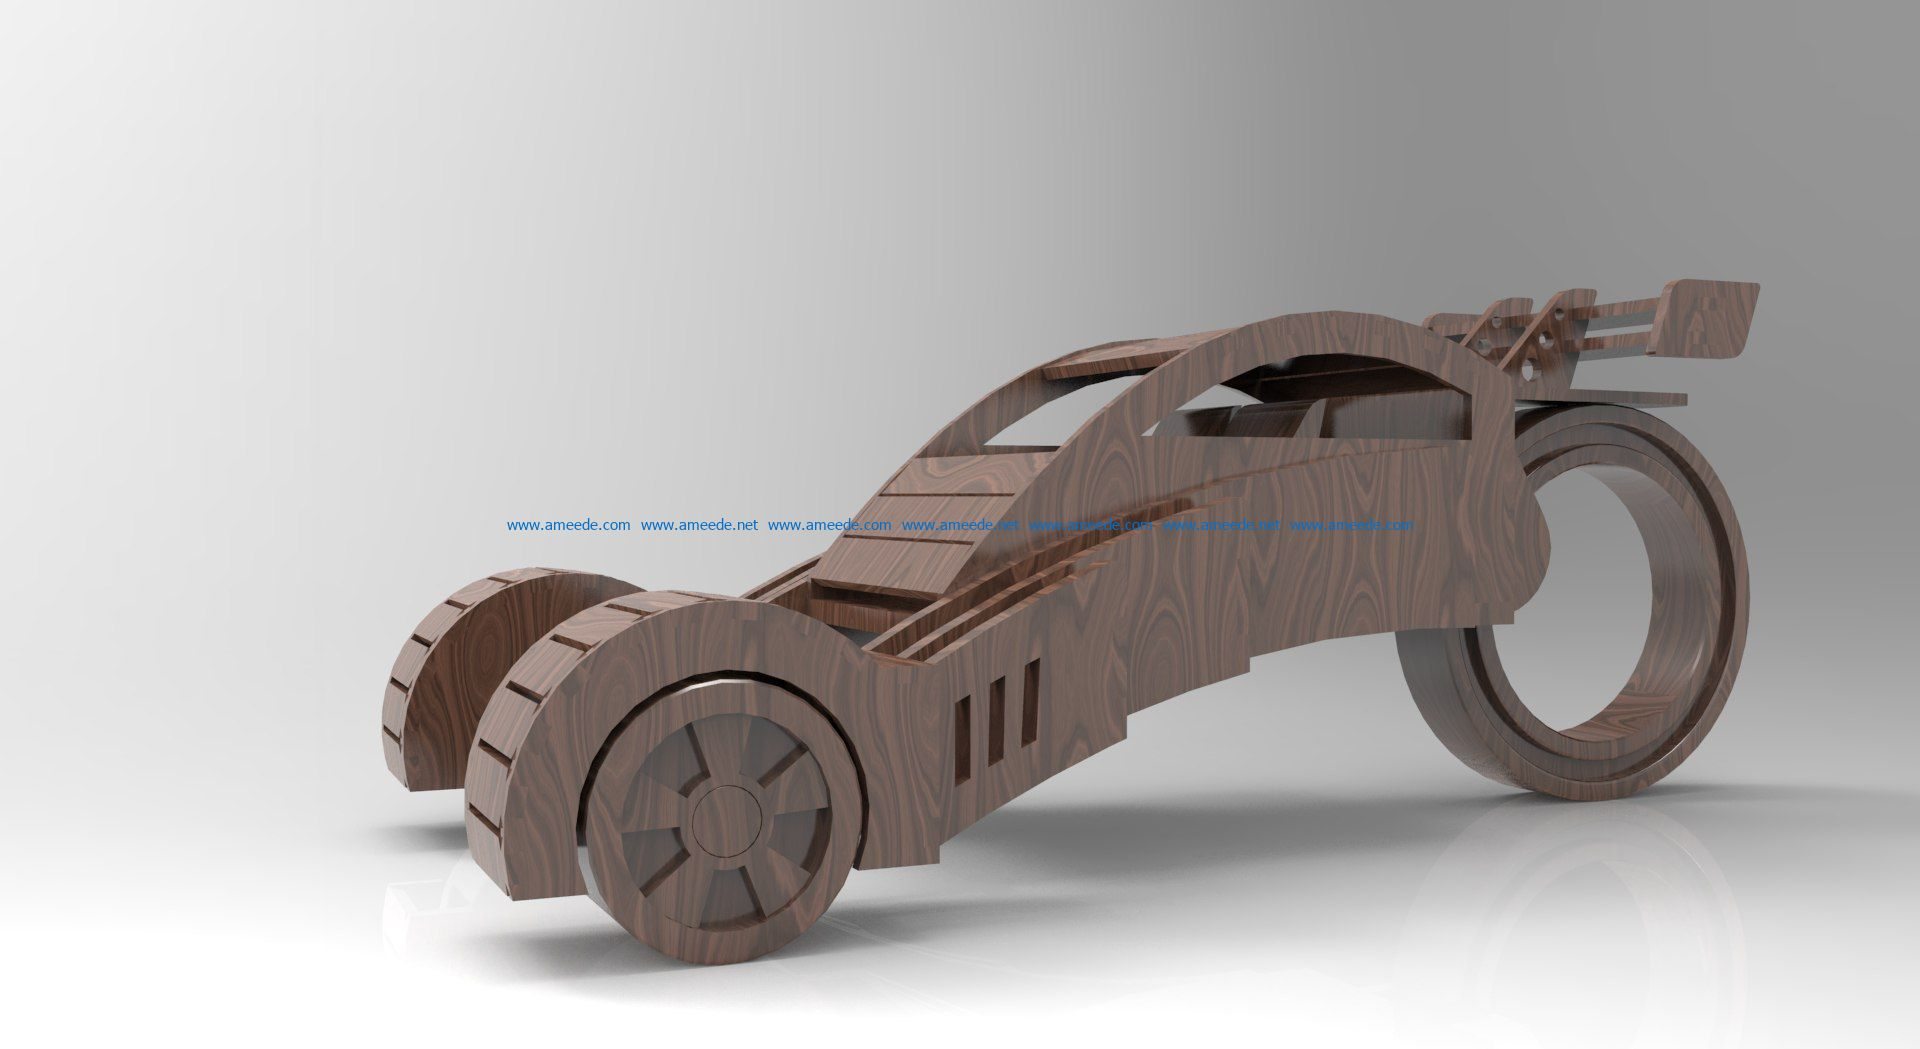 Tricycle file cdr and dxf free vector download for Laser cut CNC